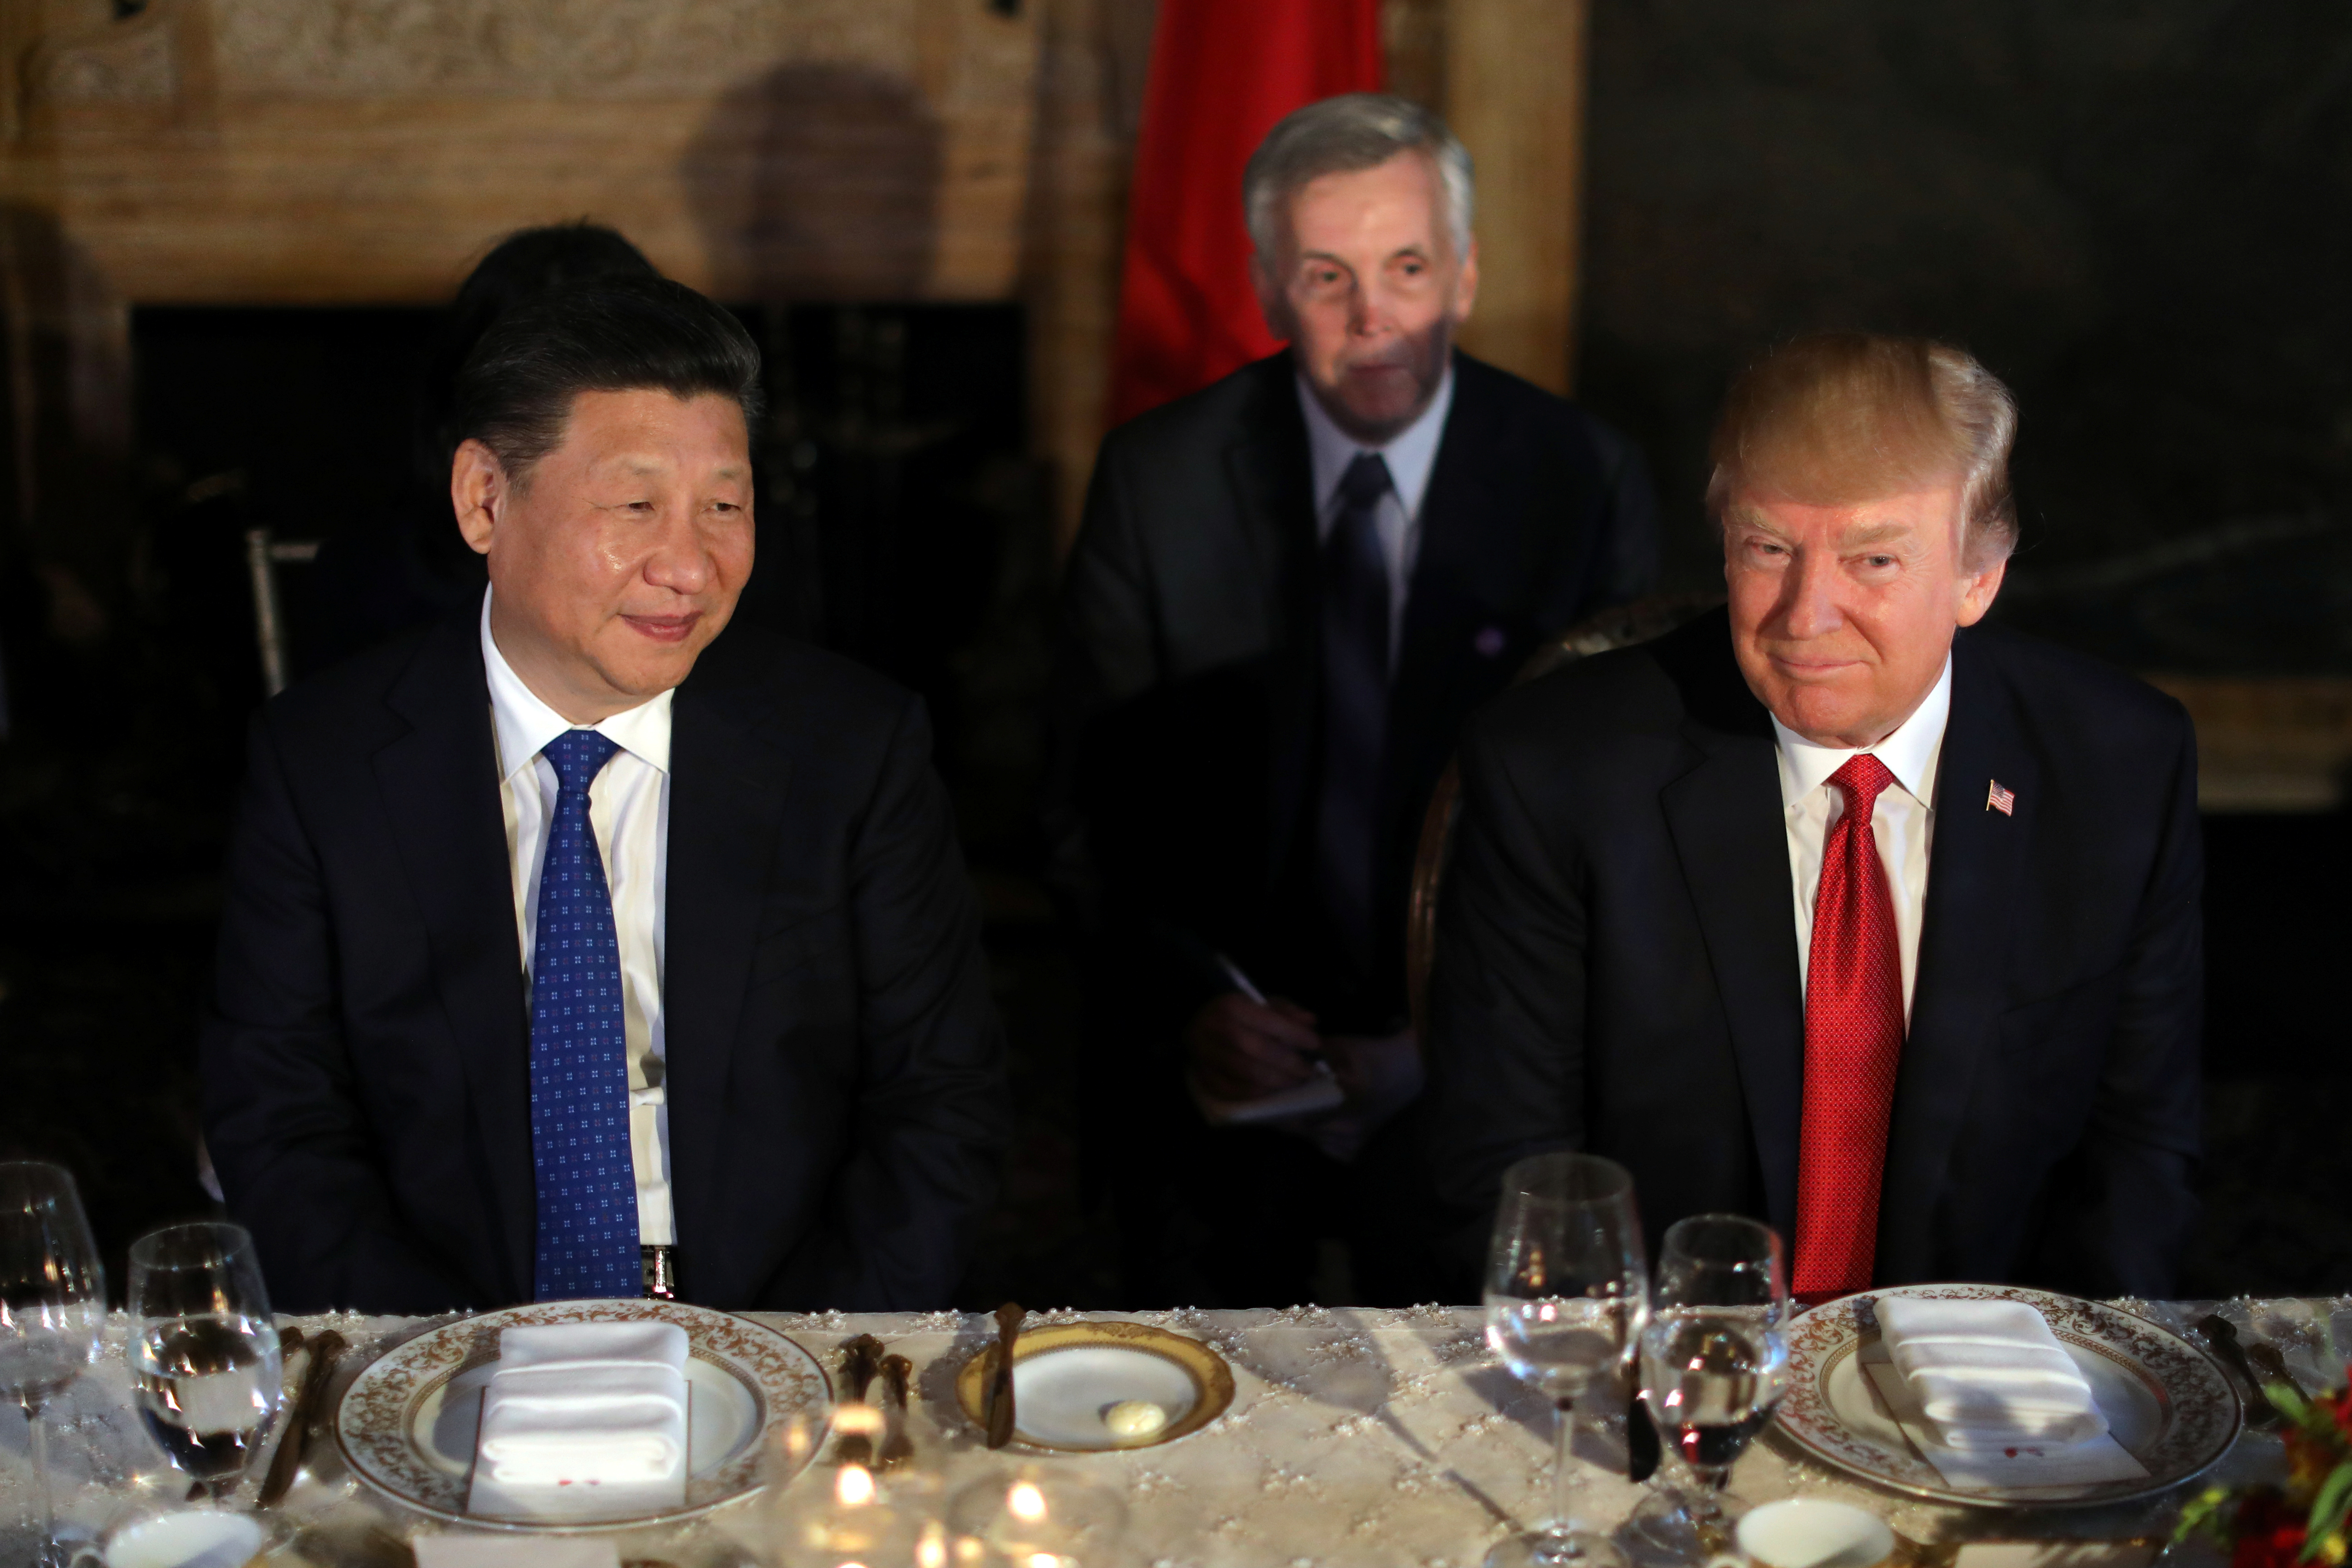 Chinese leader Xi Jinping and President Donald Trump attend a dinner at the start of their summit at Trump's Mar-a-Lago estate in West Palm Beach, Florida. (REUTERS/Carlos Barria)